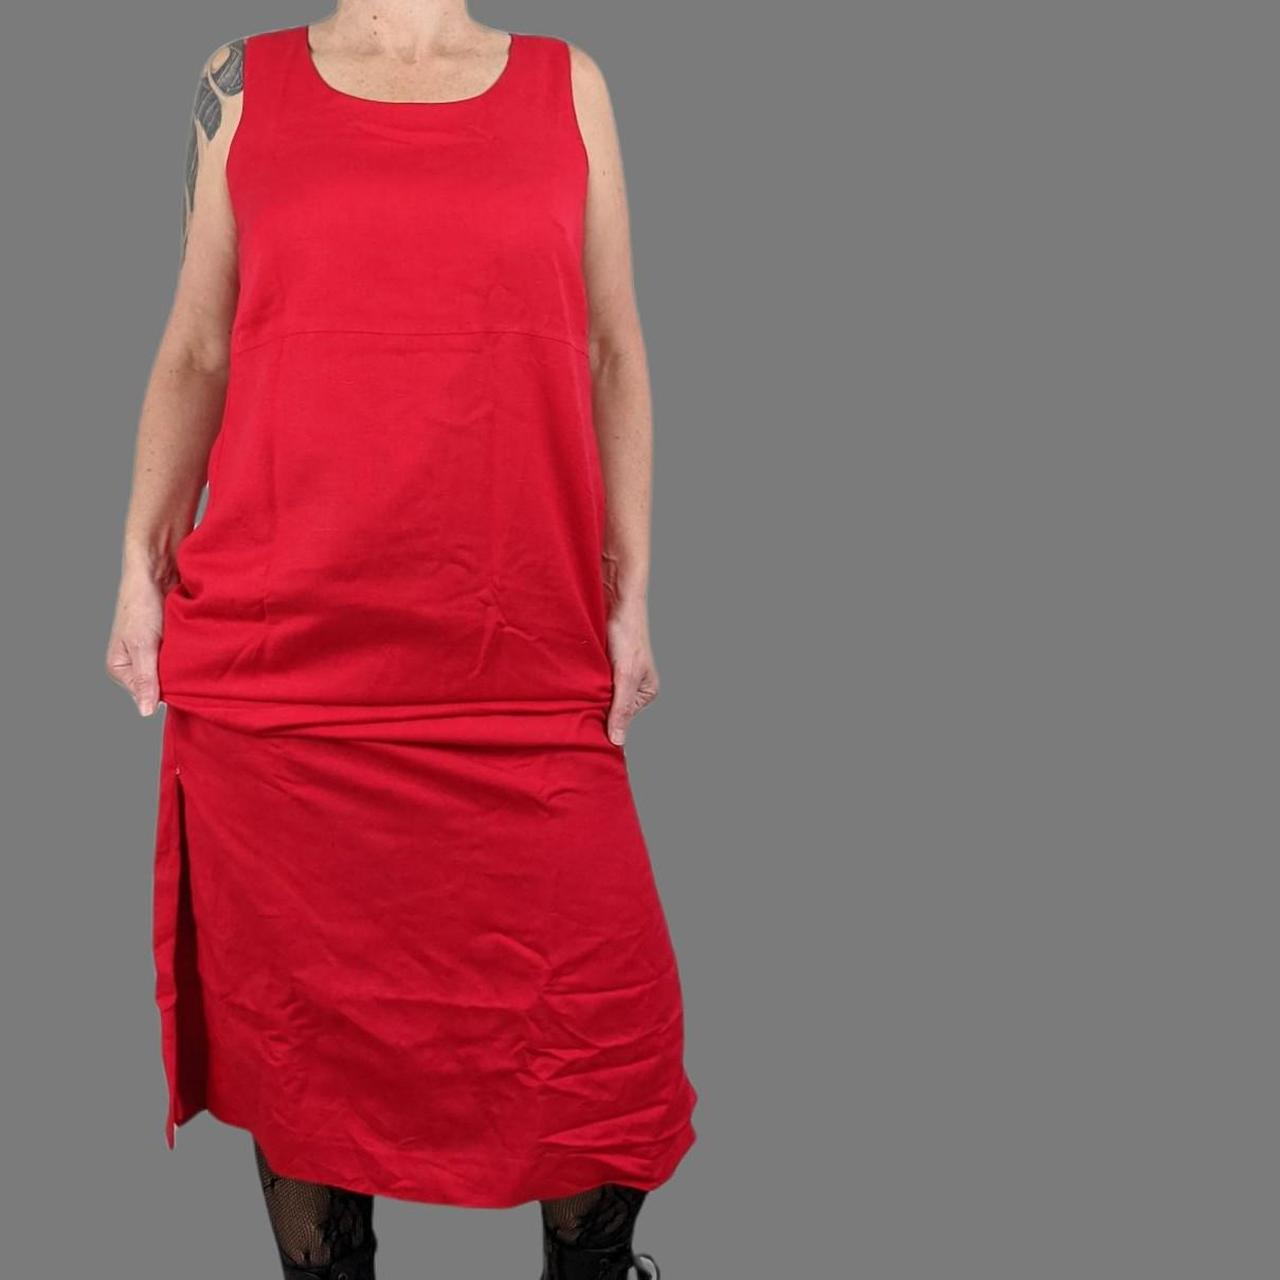 Product Image 1 - Vintage 90s early 00s sleeveless